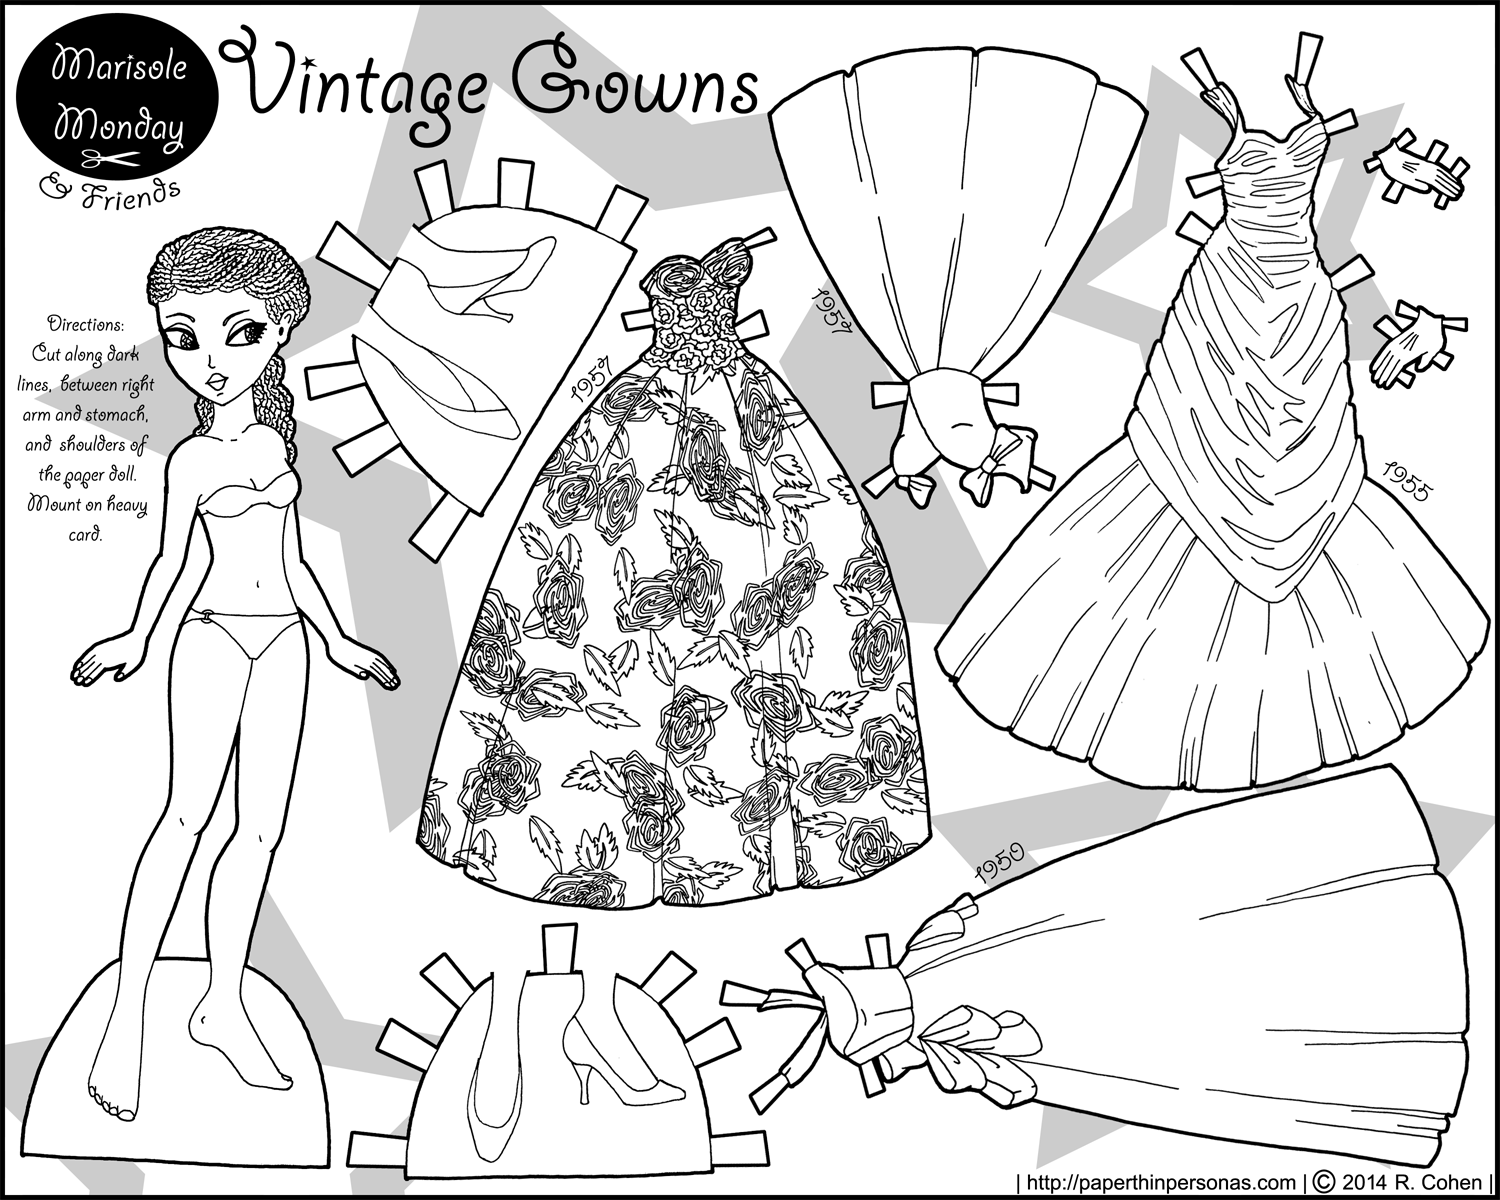 dress up dolls printable vintage gowns 1950s evening gowns in paper doll form dolls printable dress up